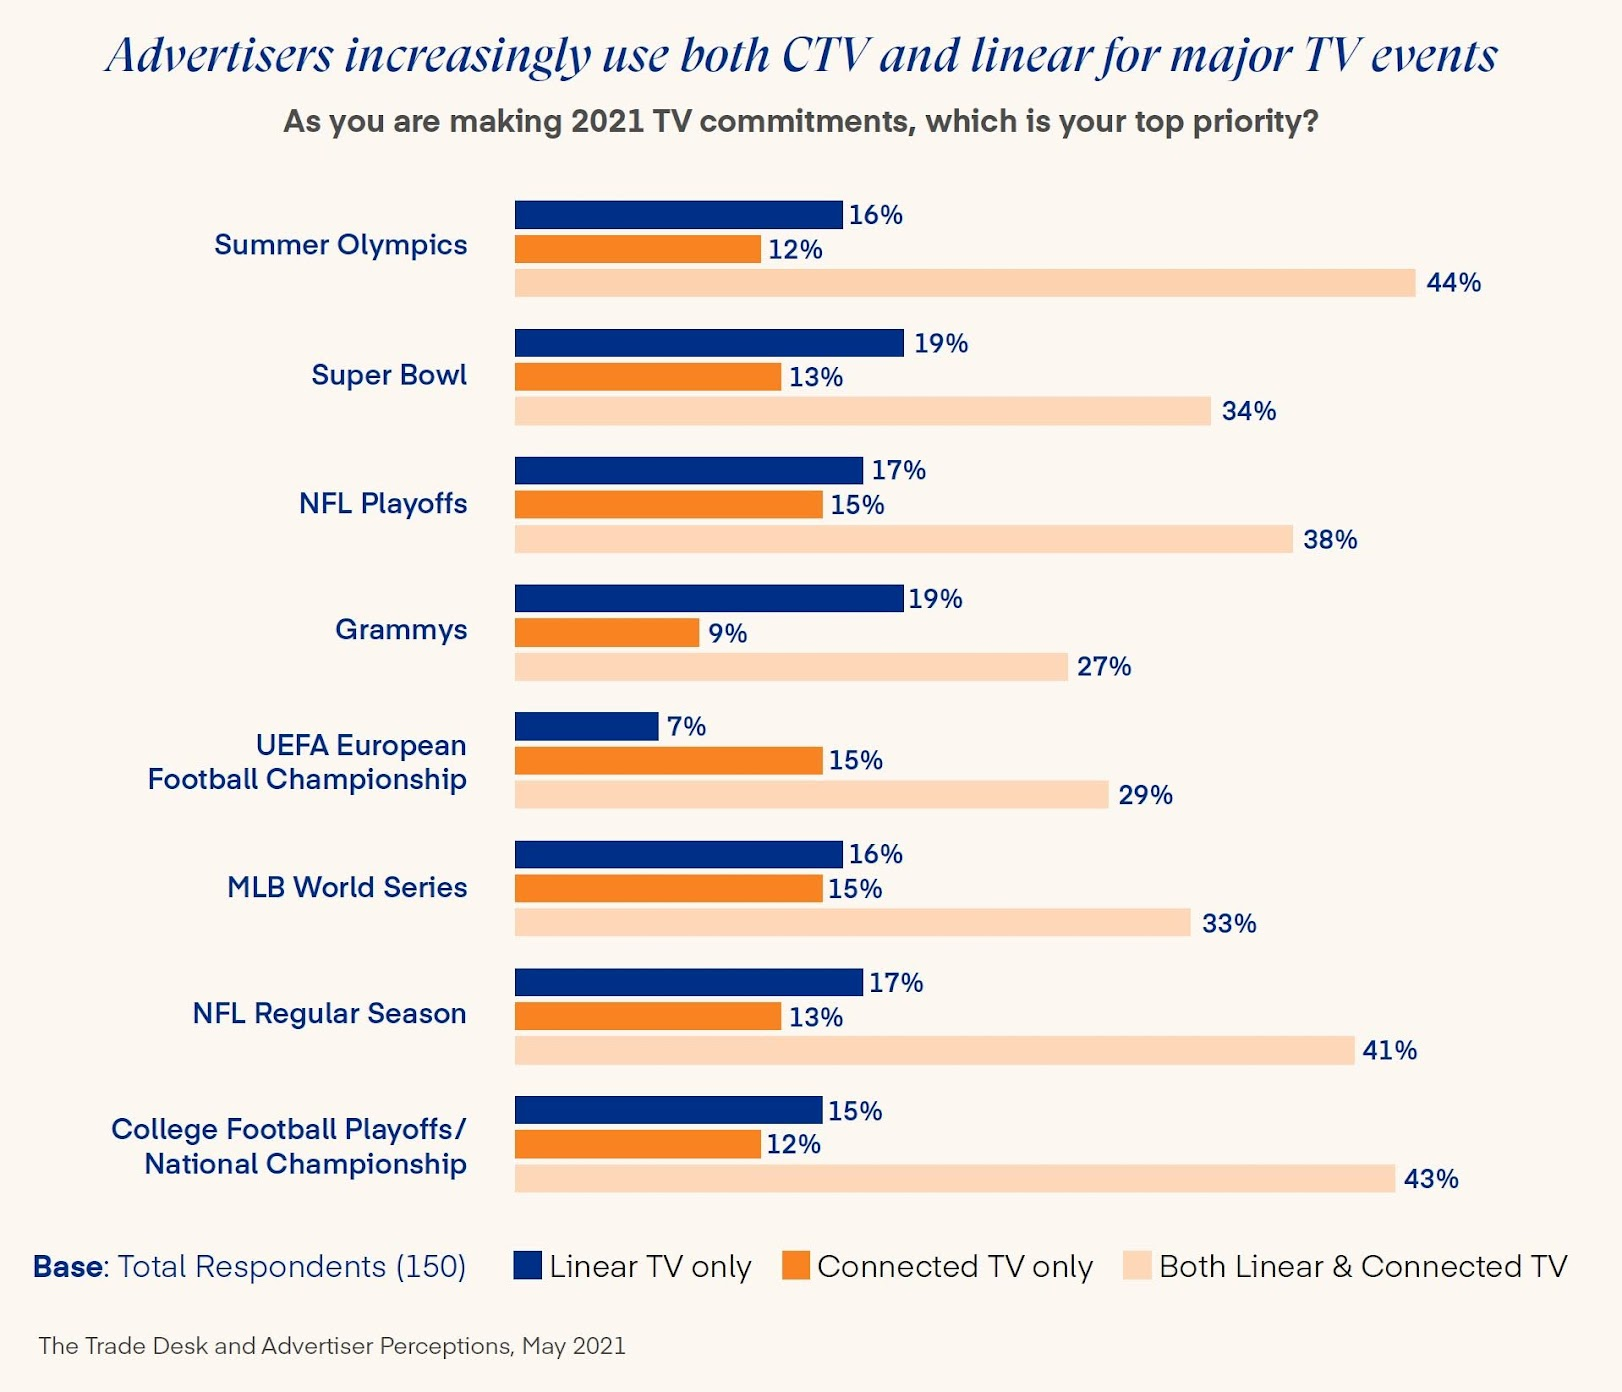 Advertisers increasingly use both CTV and linear for major TV events